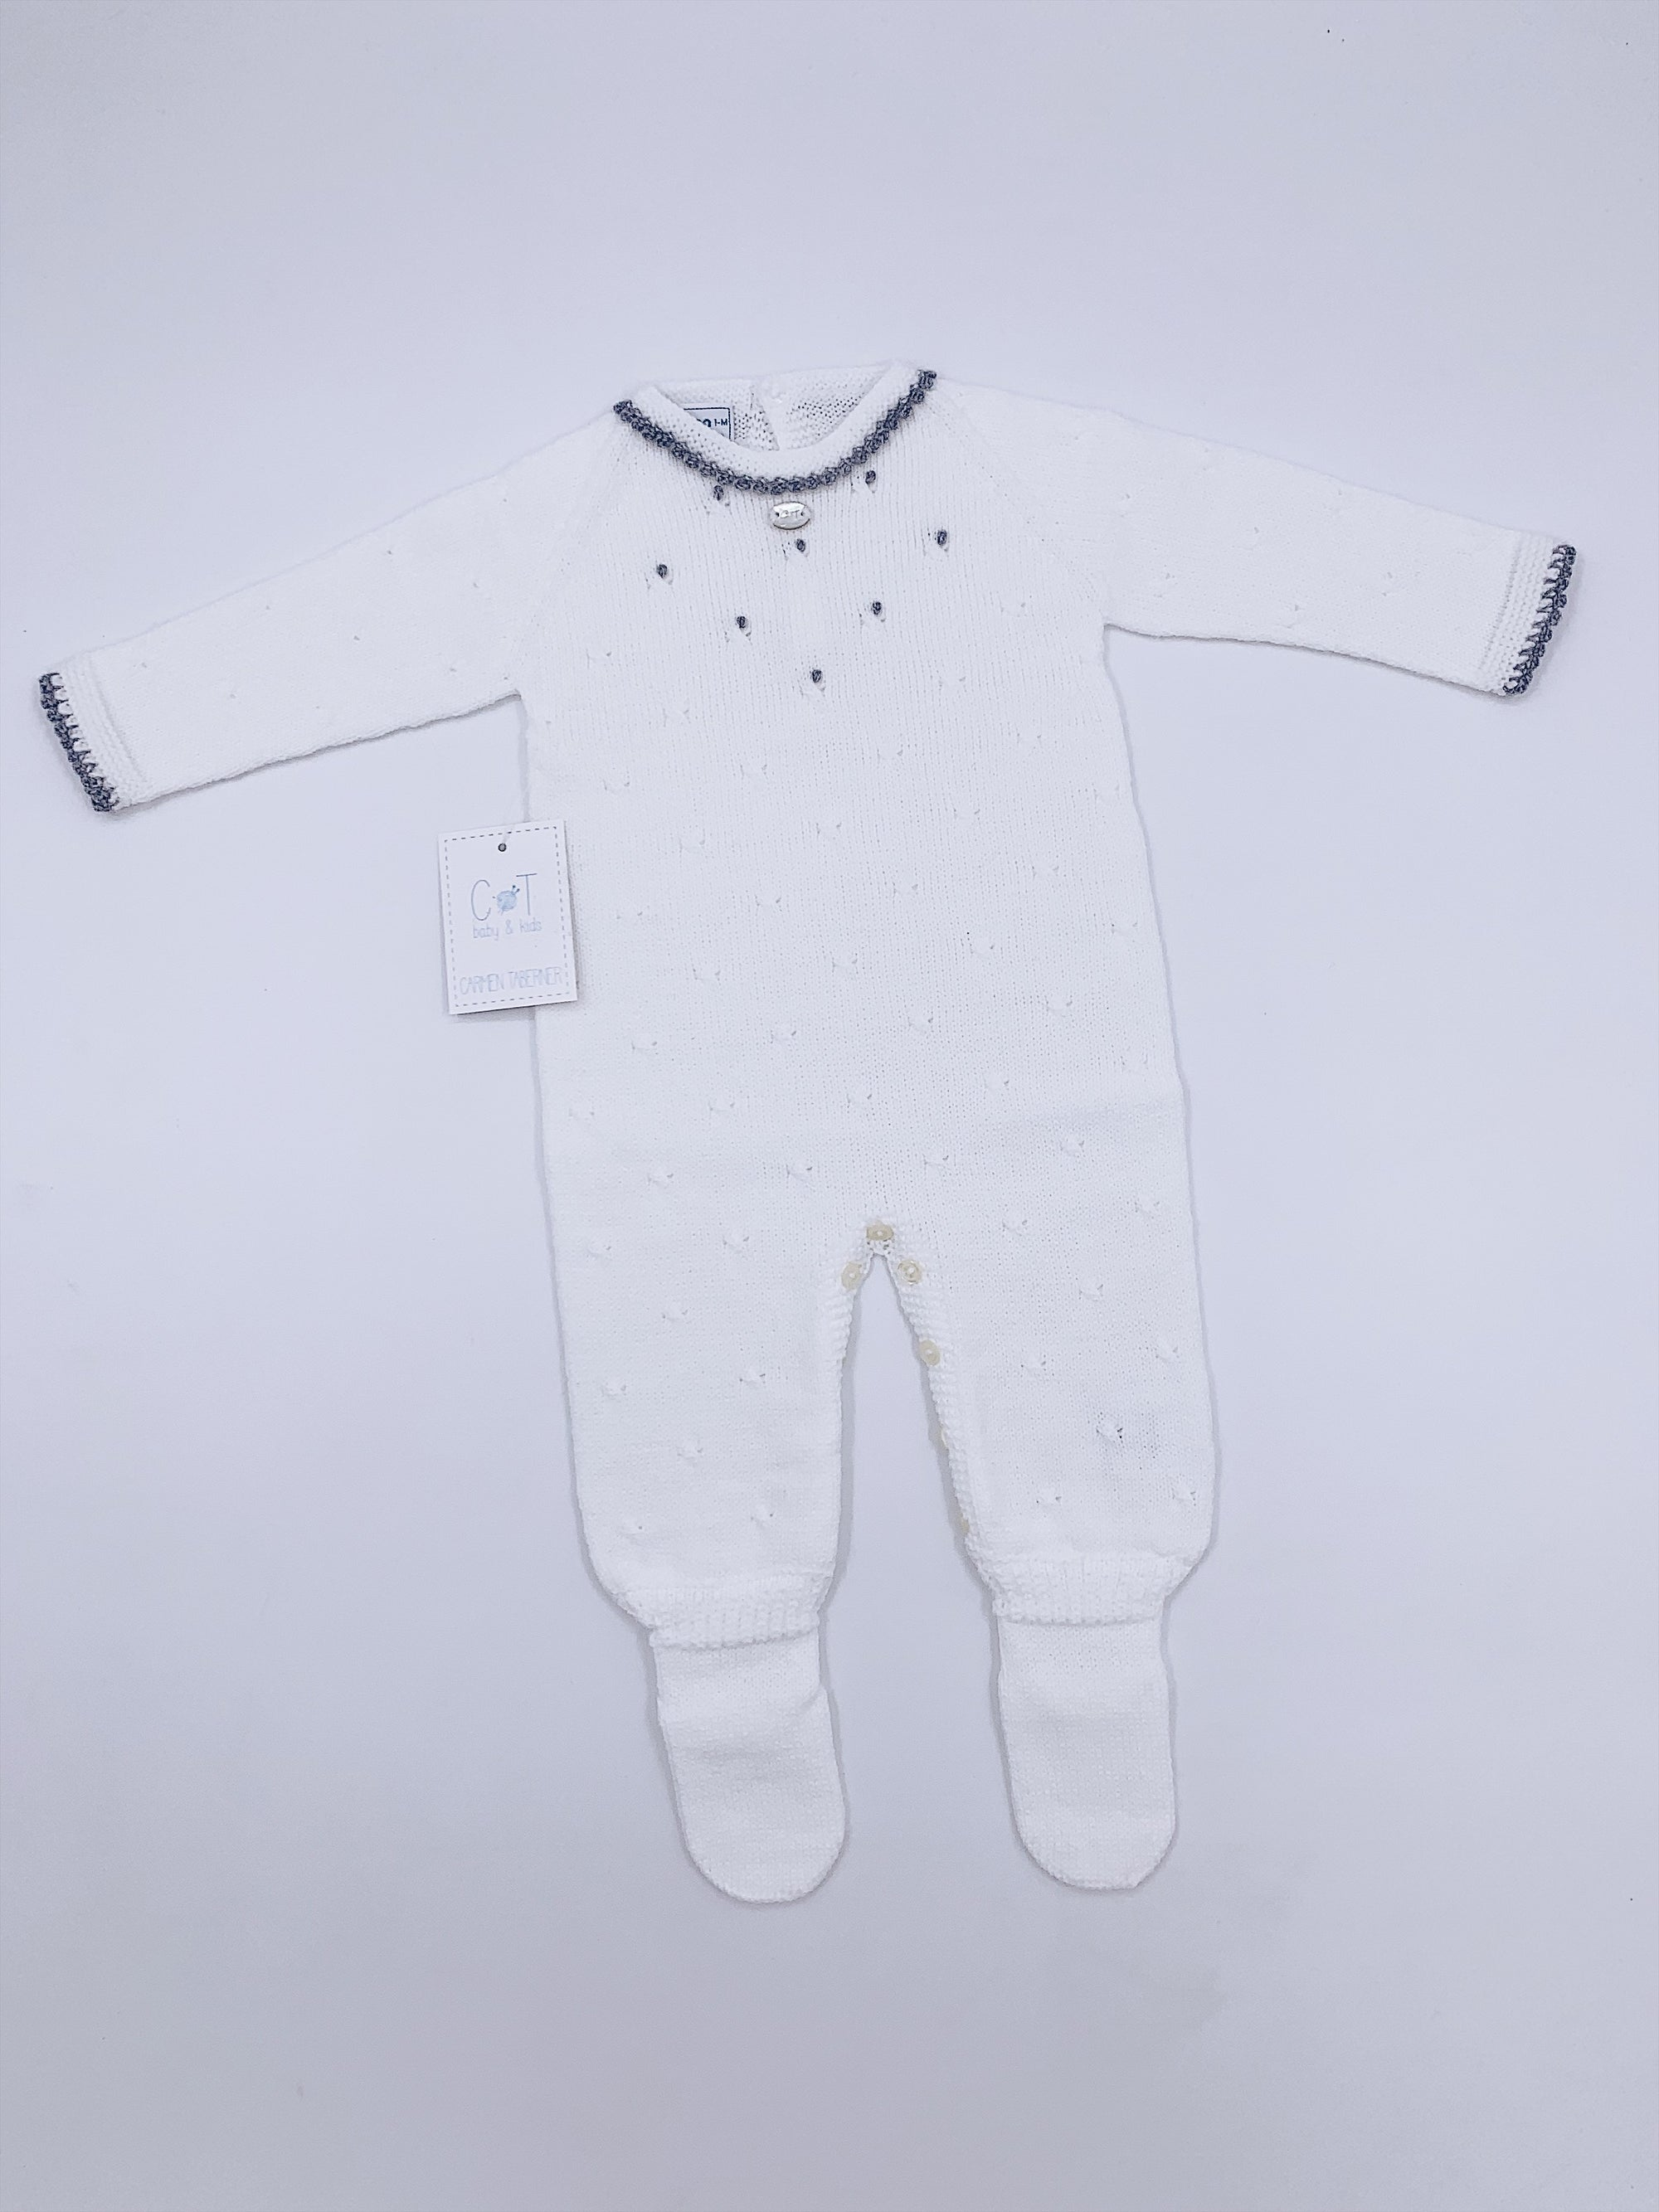 Classic/Timeless white knitted babygrow